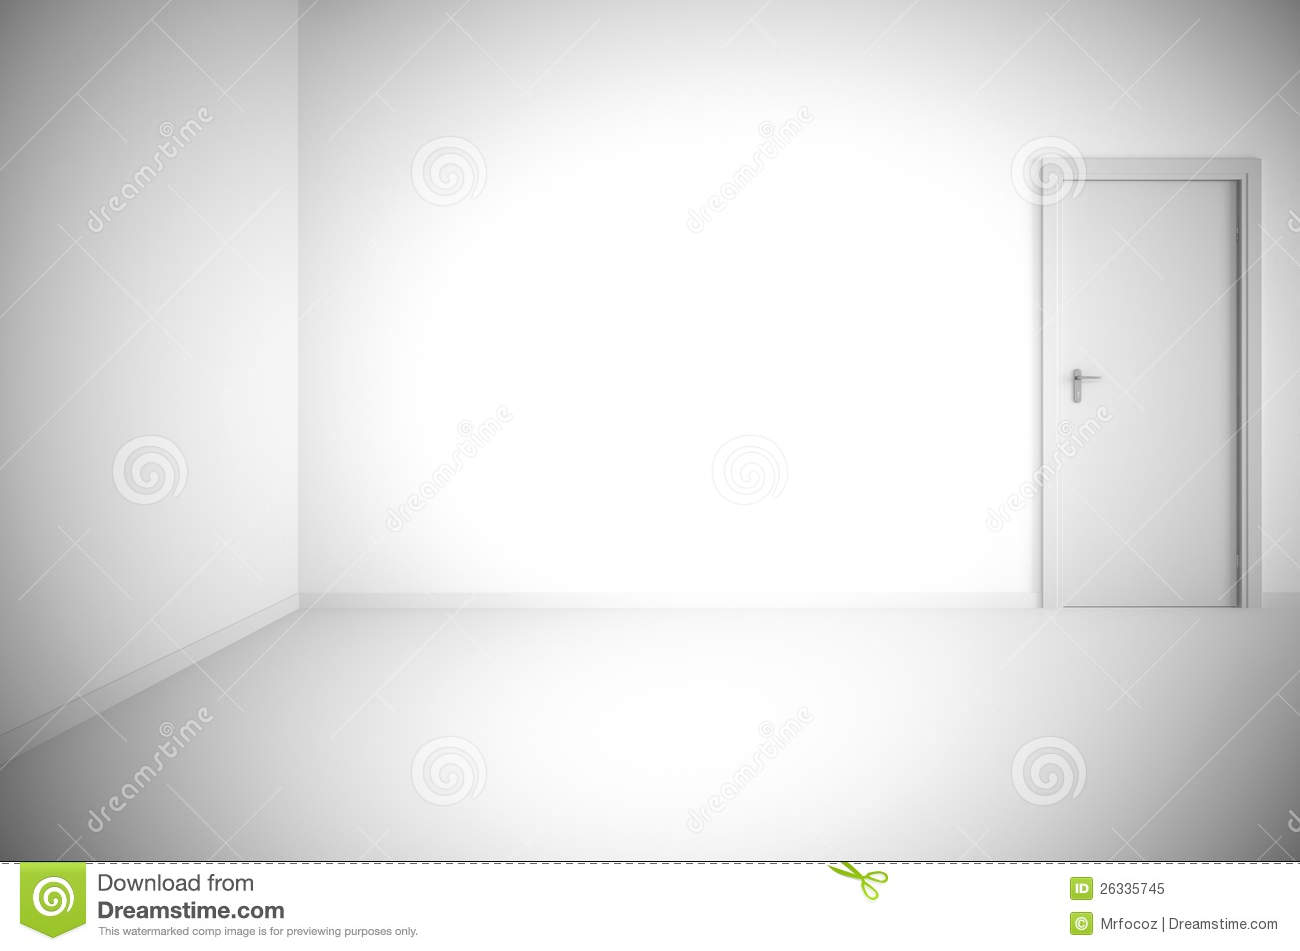 living room pictures clipart accent wall ideas for with wallpaper background white royalty free stock photo - image ...